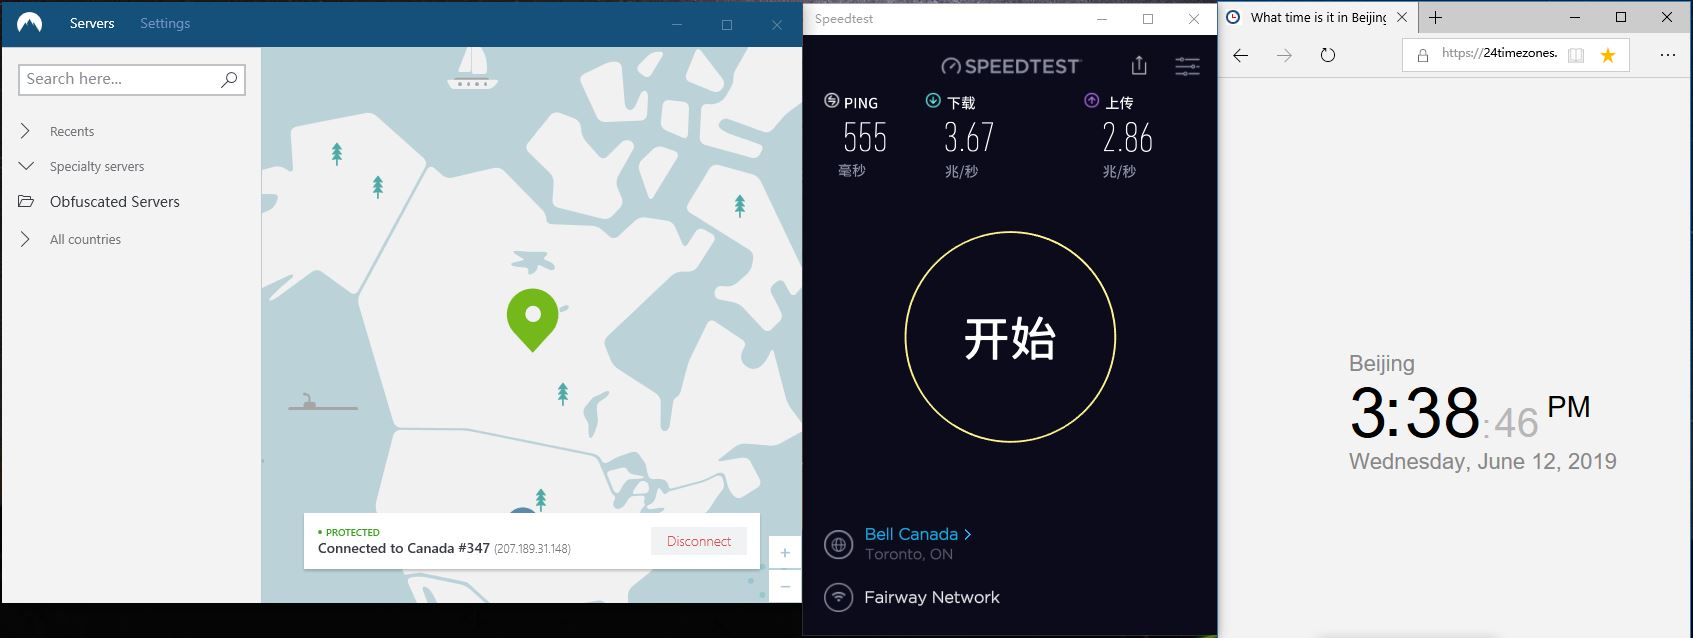 nordVPN-windows10-canada-347节点-speedtest-20190612